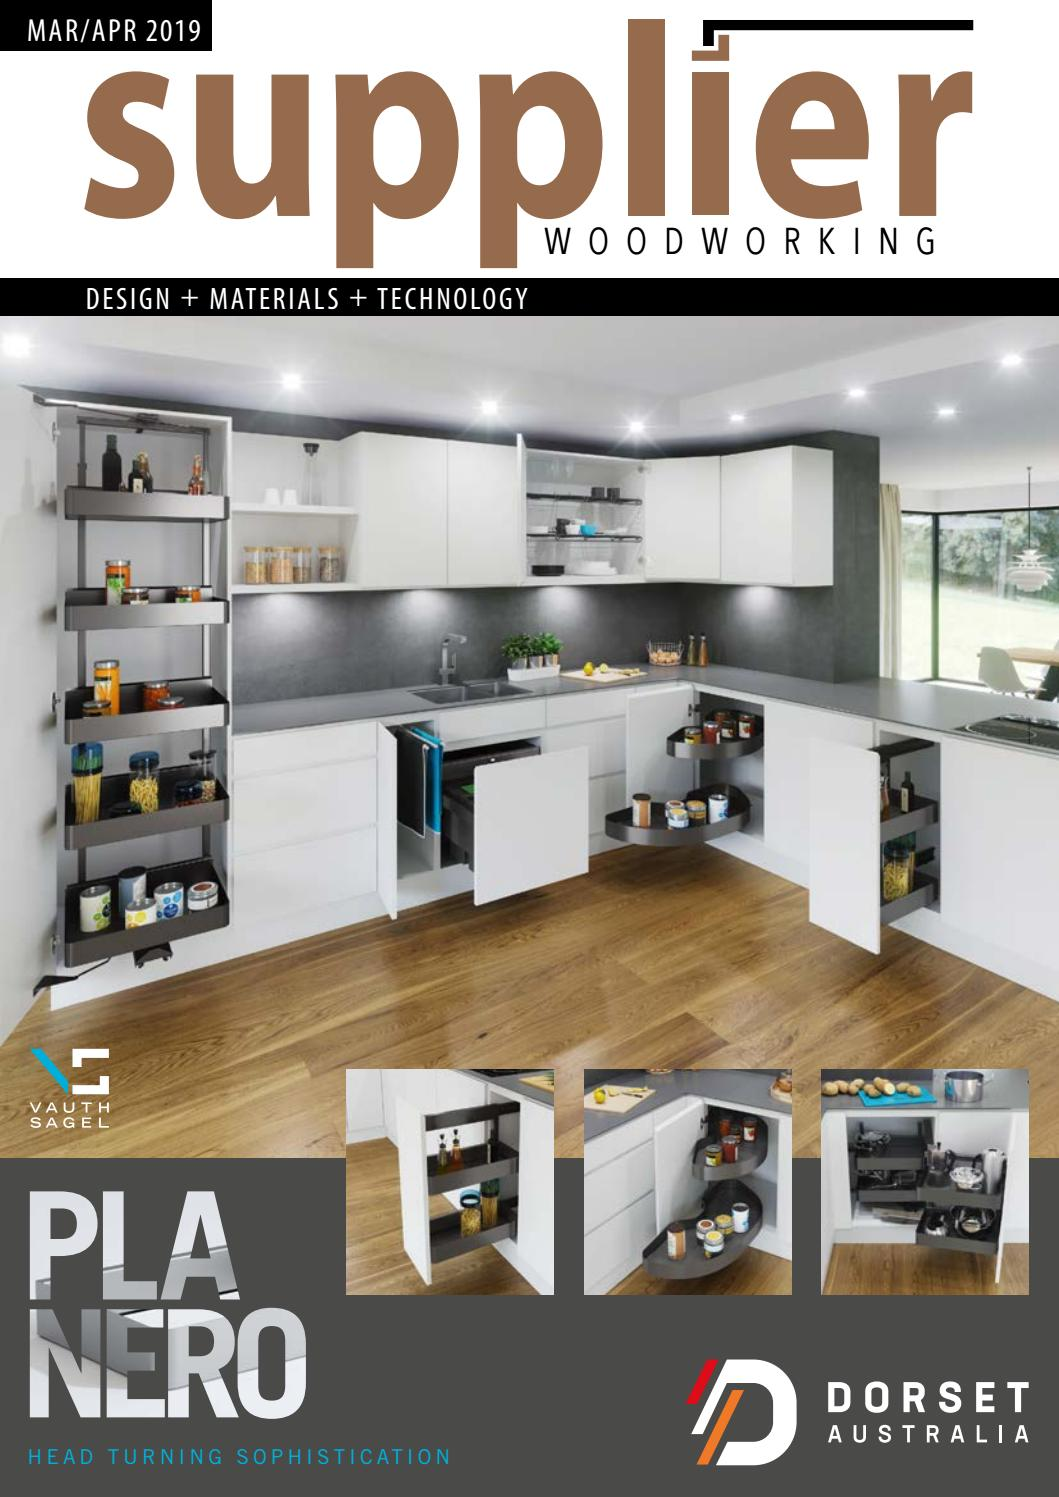 Prix Corian Au M2 supplier woodworking magazine march/april 2019elite